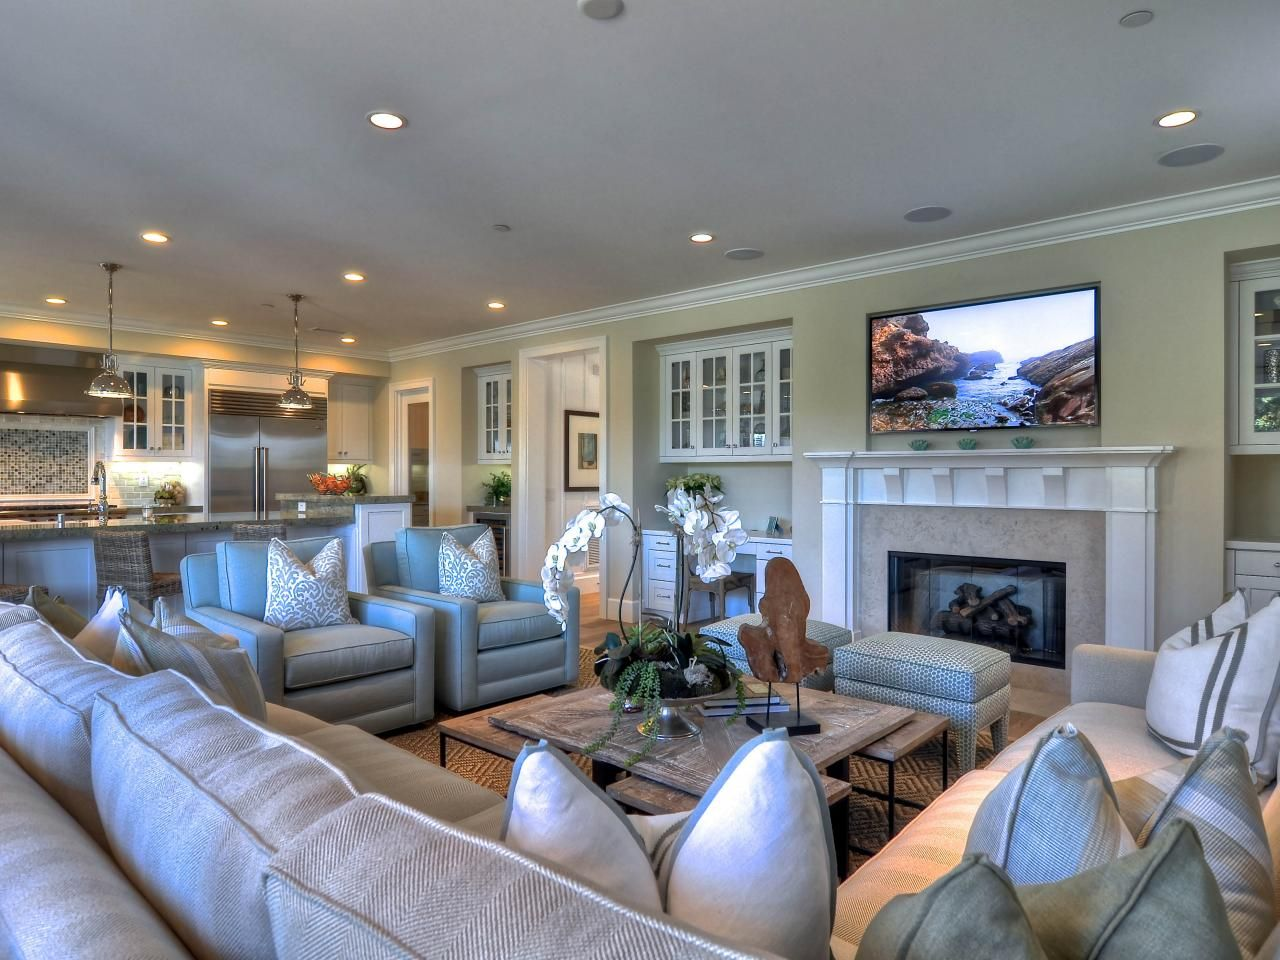 Coastal decor is found in the details in this spacious for House plans with large kitchen and family room